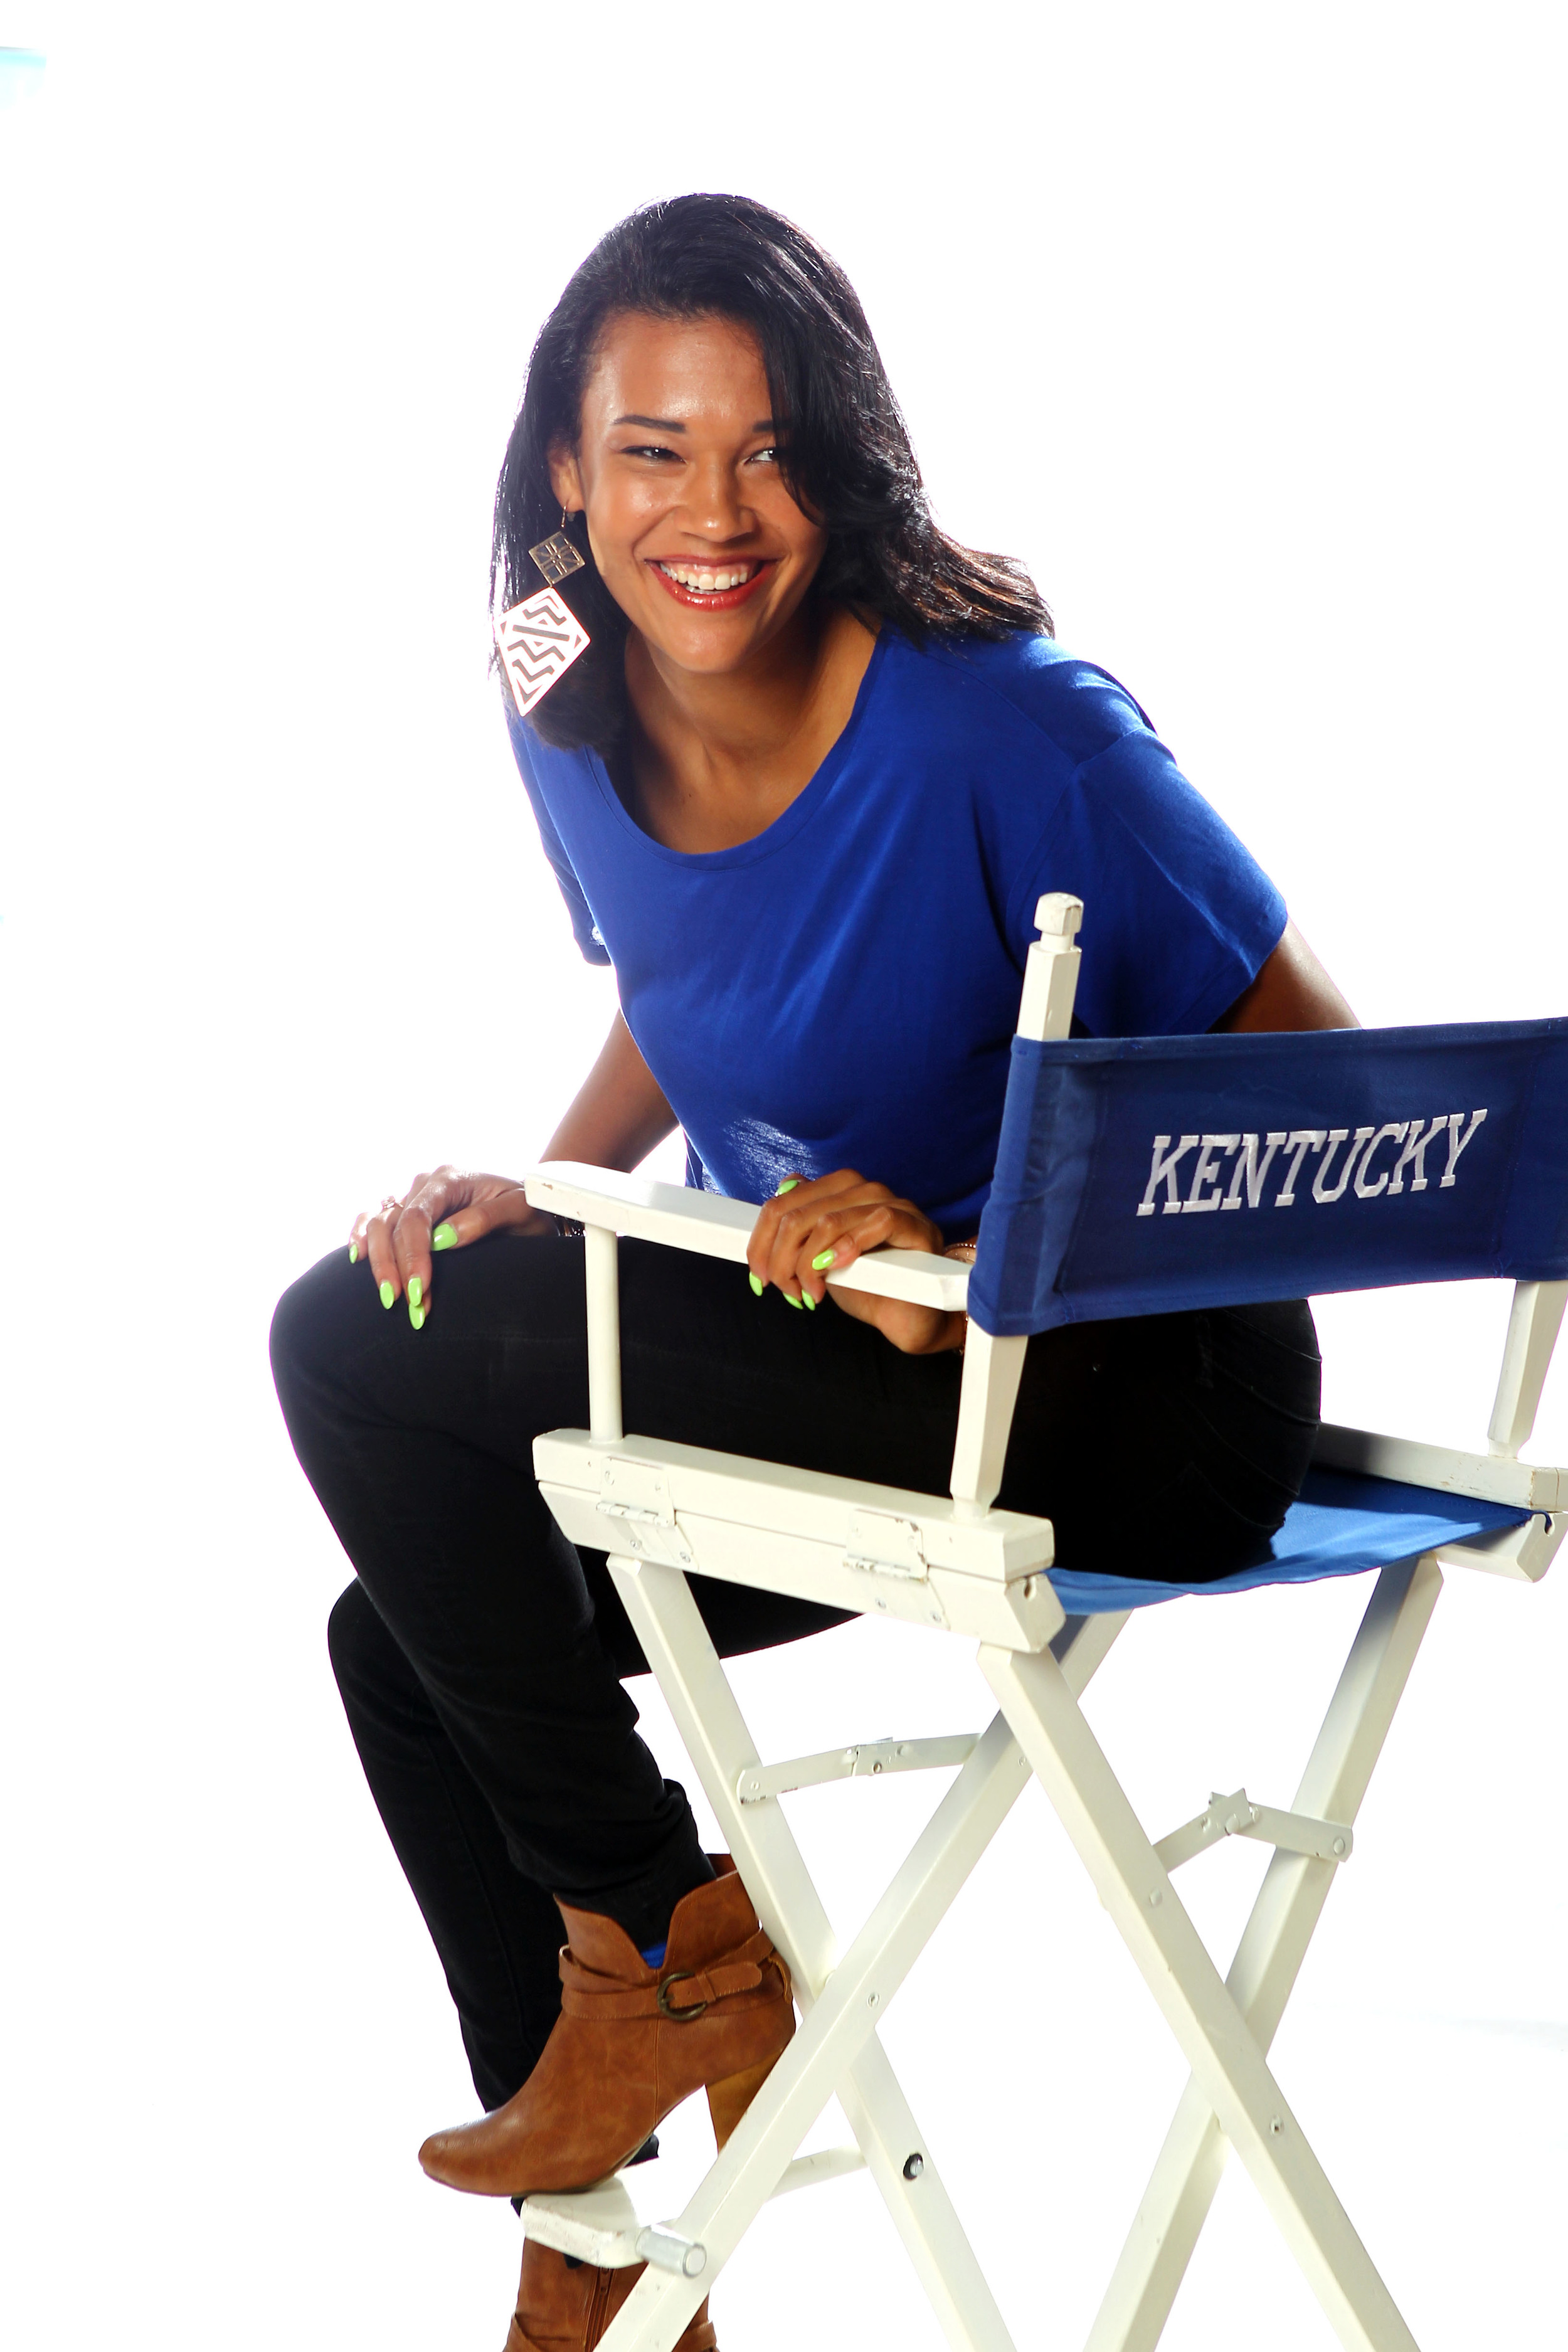 UK_wbball_outfits_281.jpg